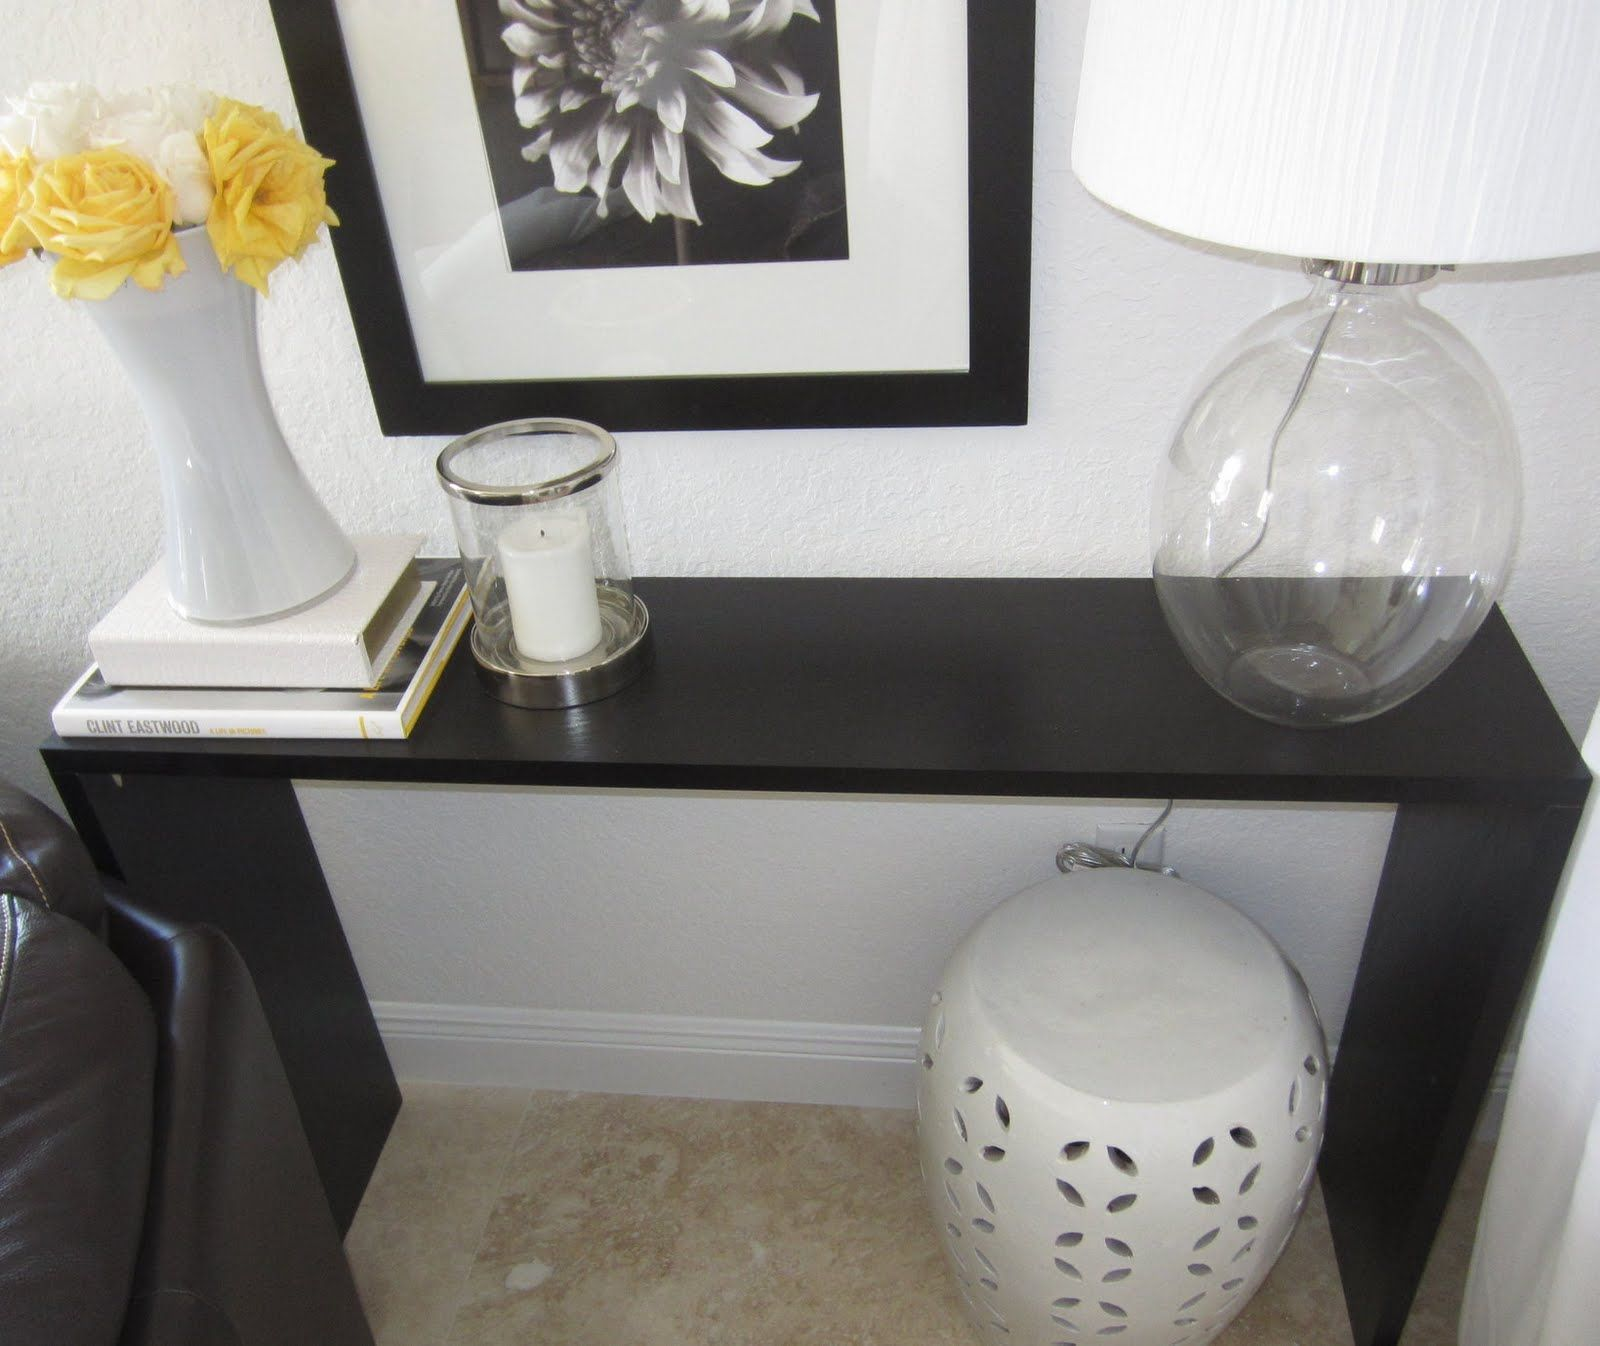 Sleek Console Table: Making Your Own Out Of Three Shelves When You Canu0027t